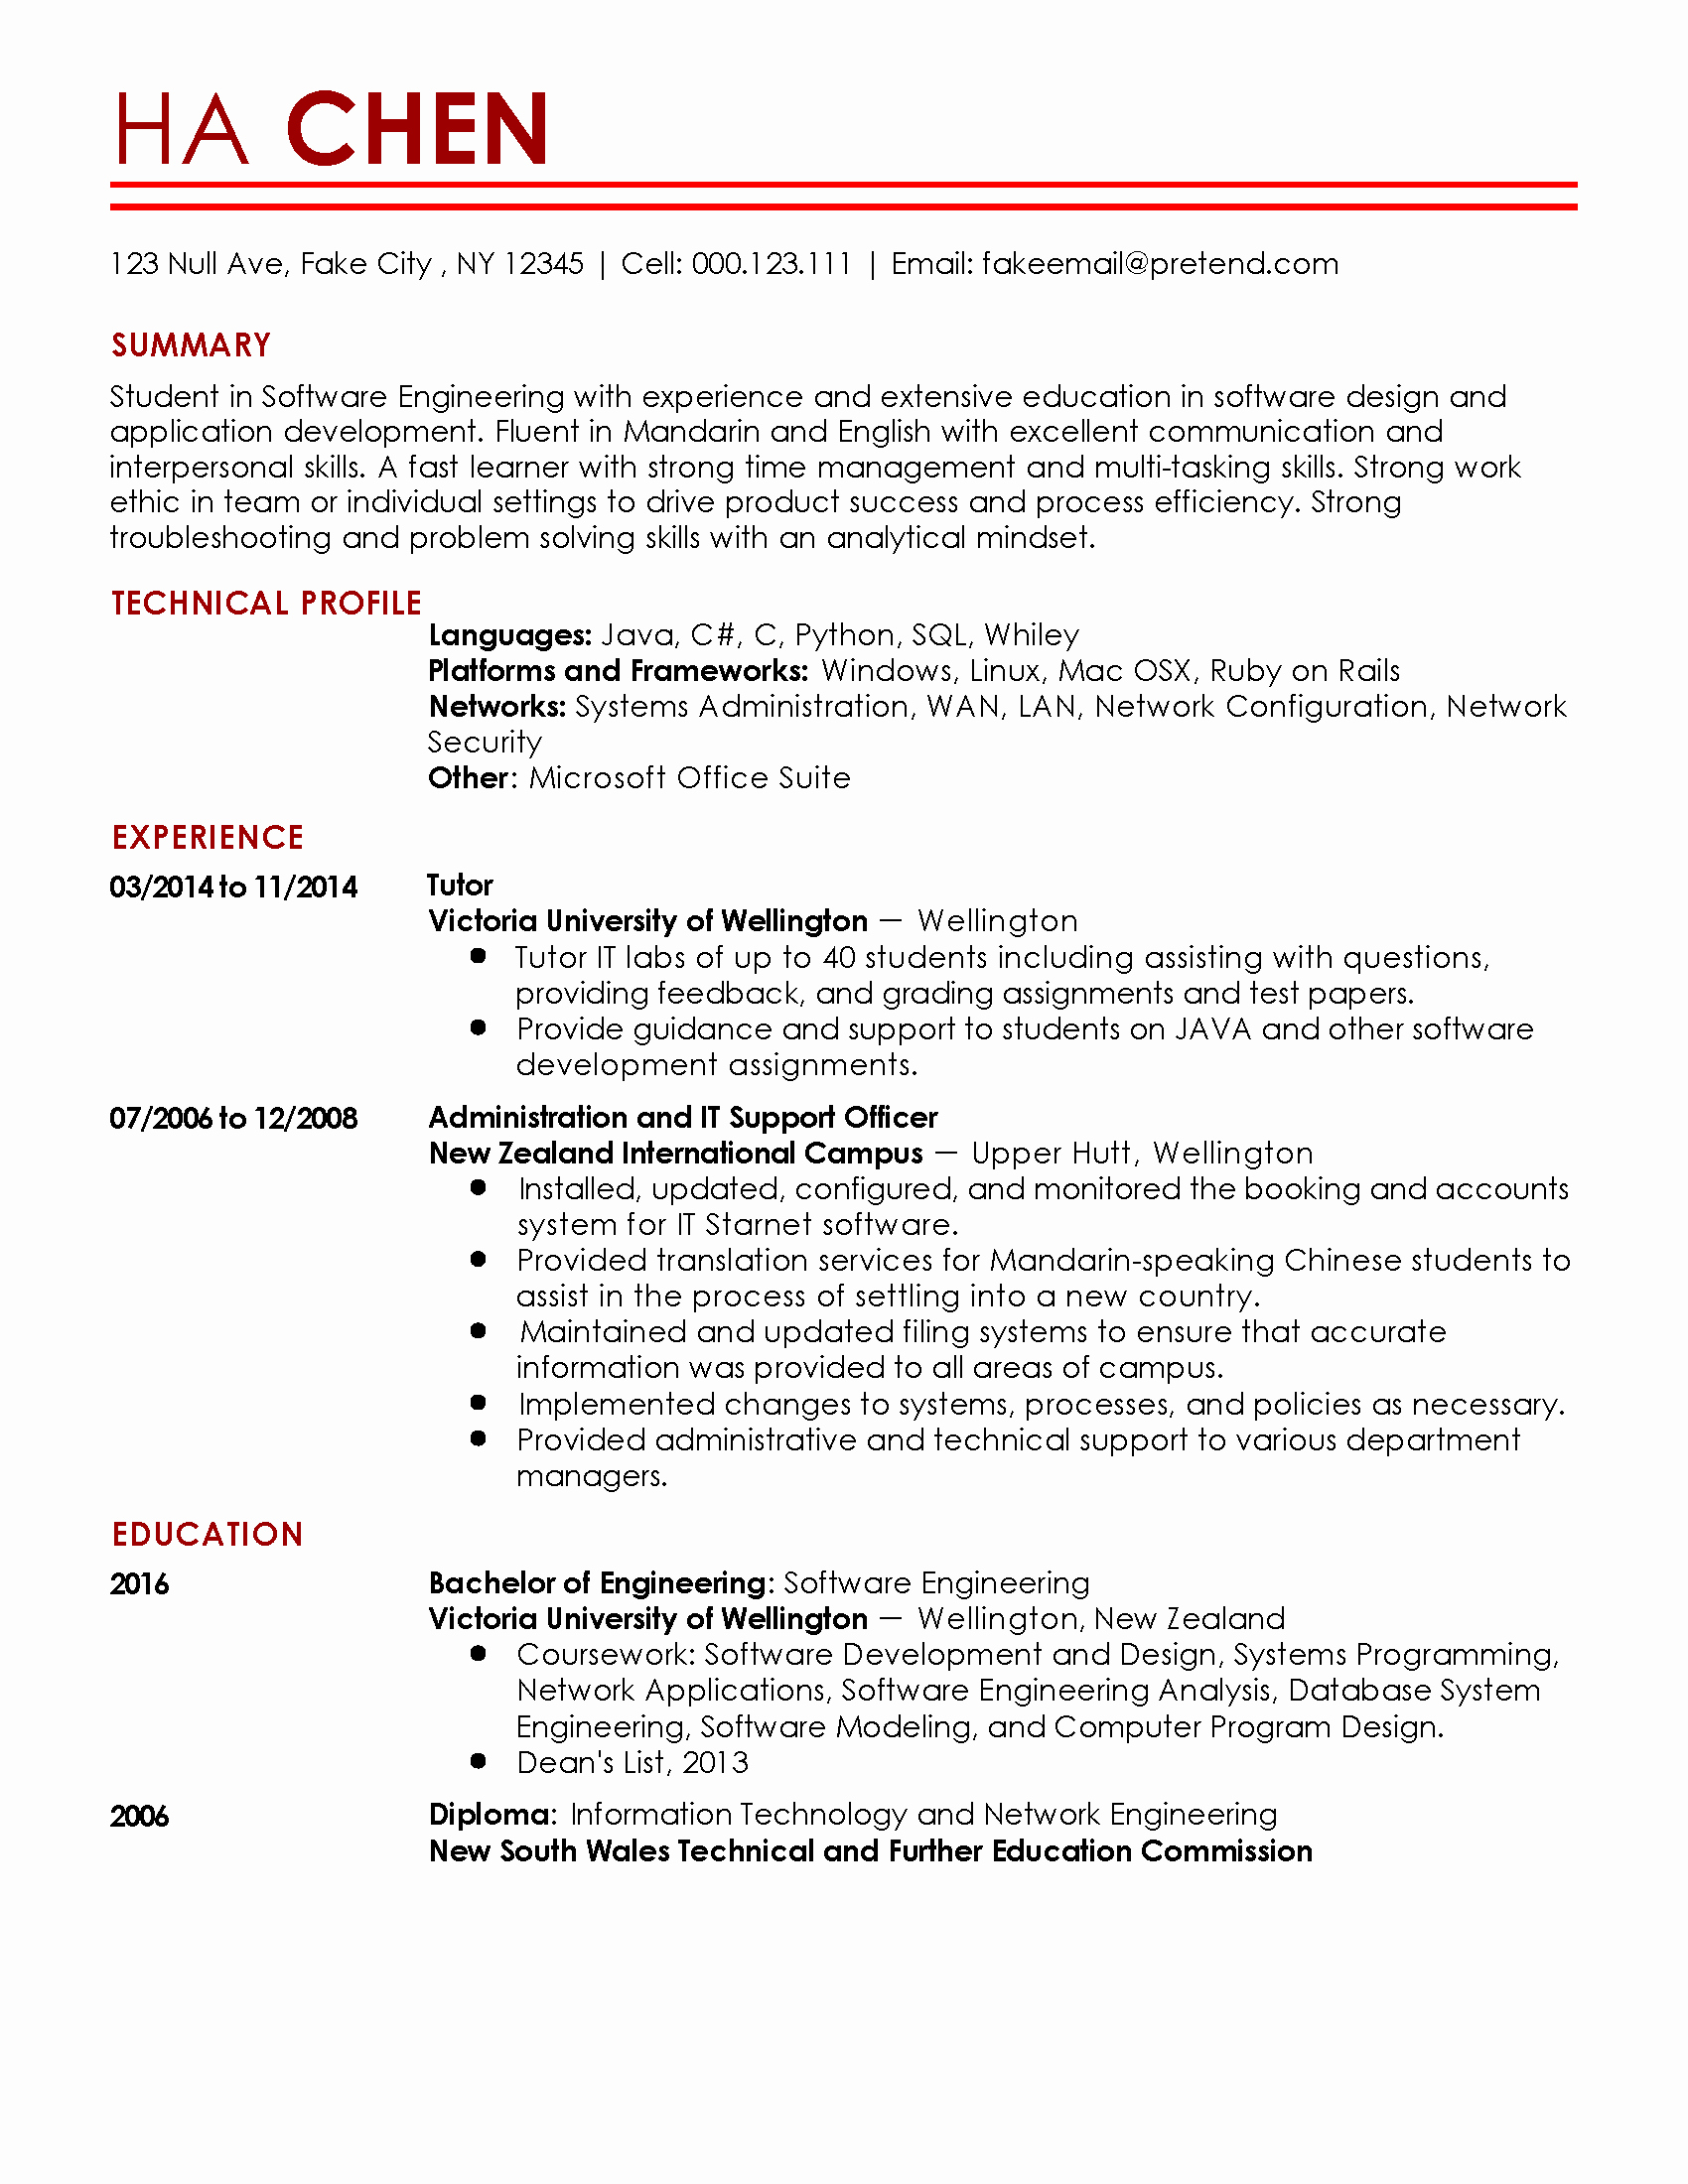 Resume Template software Engineer Lovely Professional Entry Level software Engineer Templates to